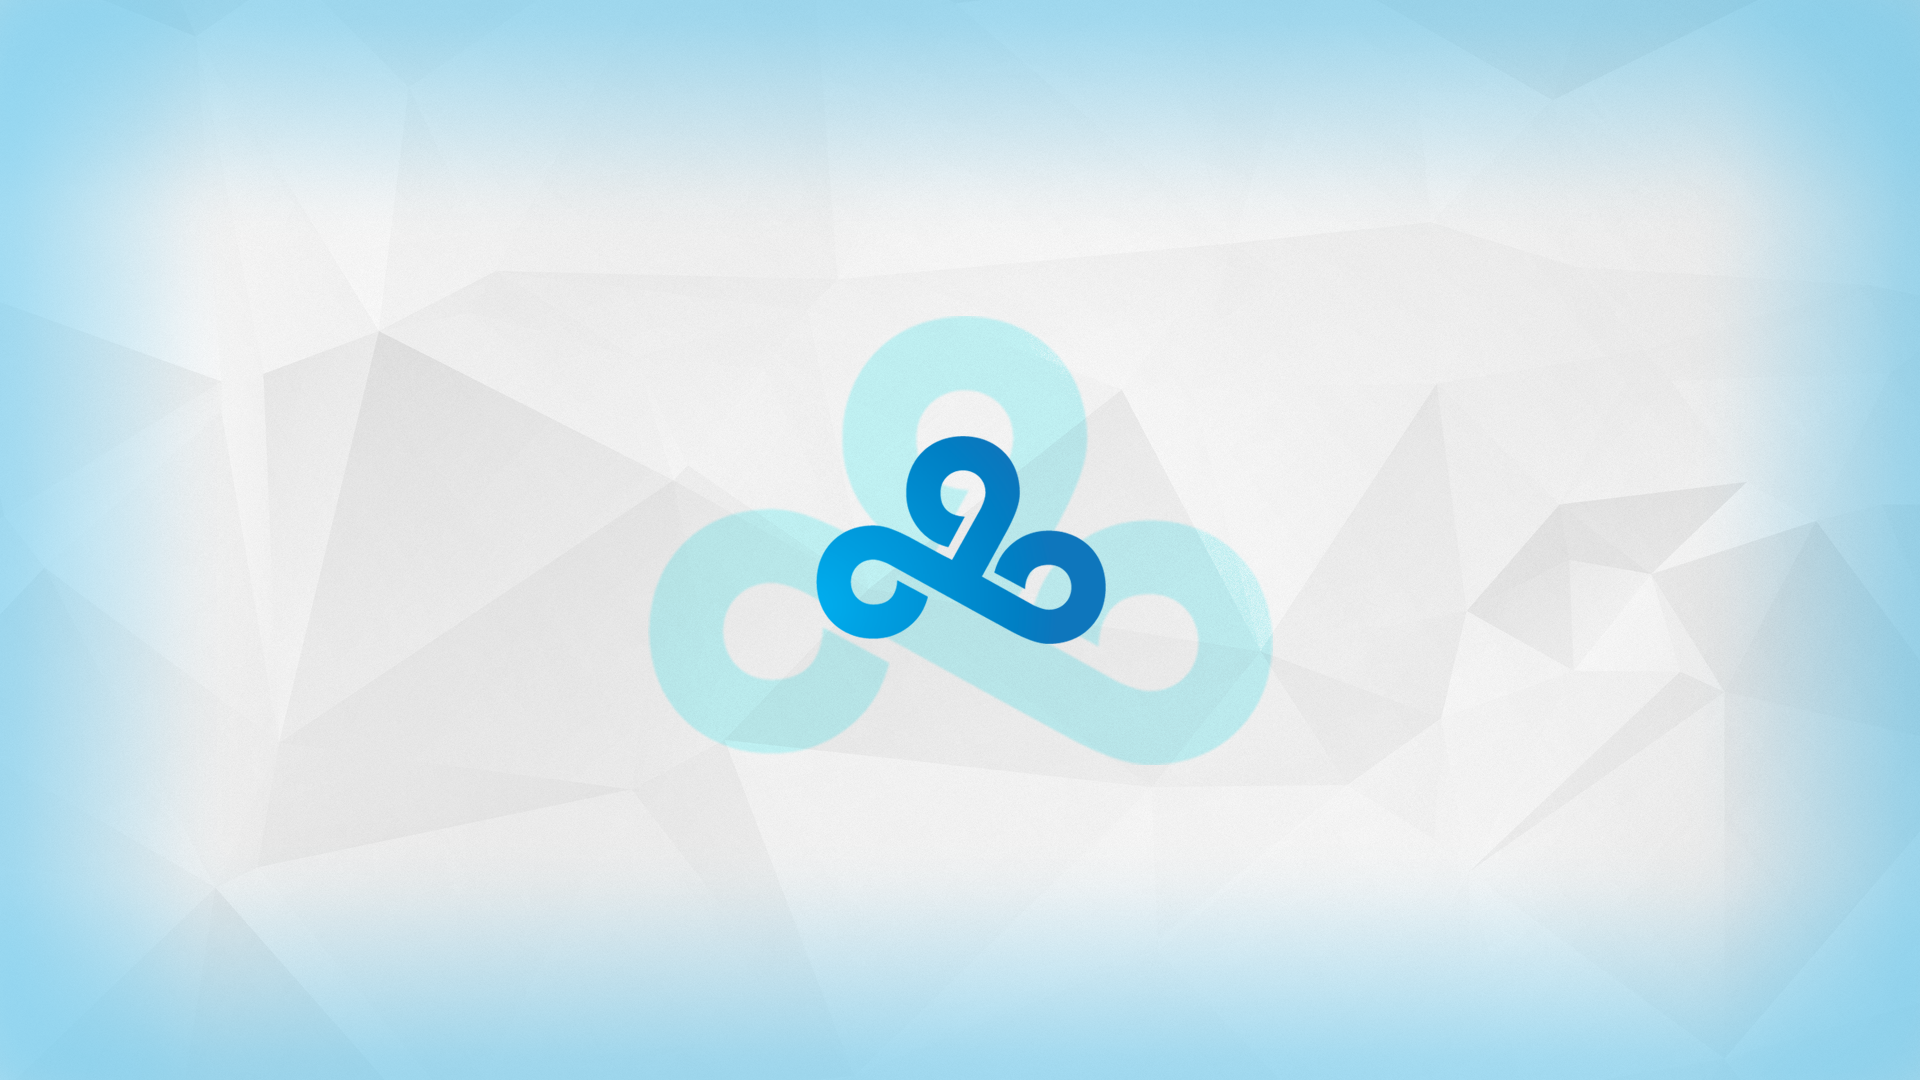 6 Cloud9 Hd Wallpapers Background Images Wallpaper Abyss